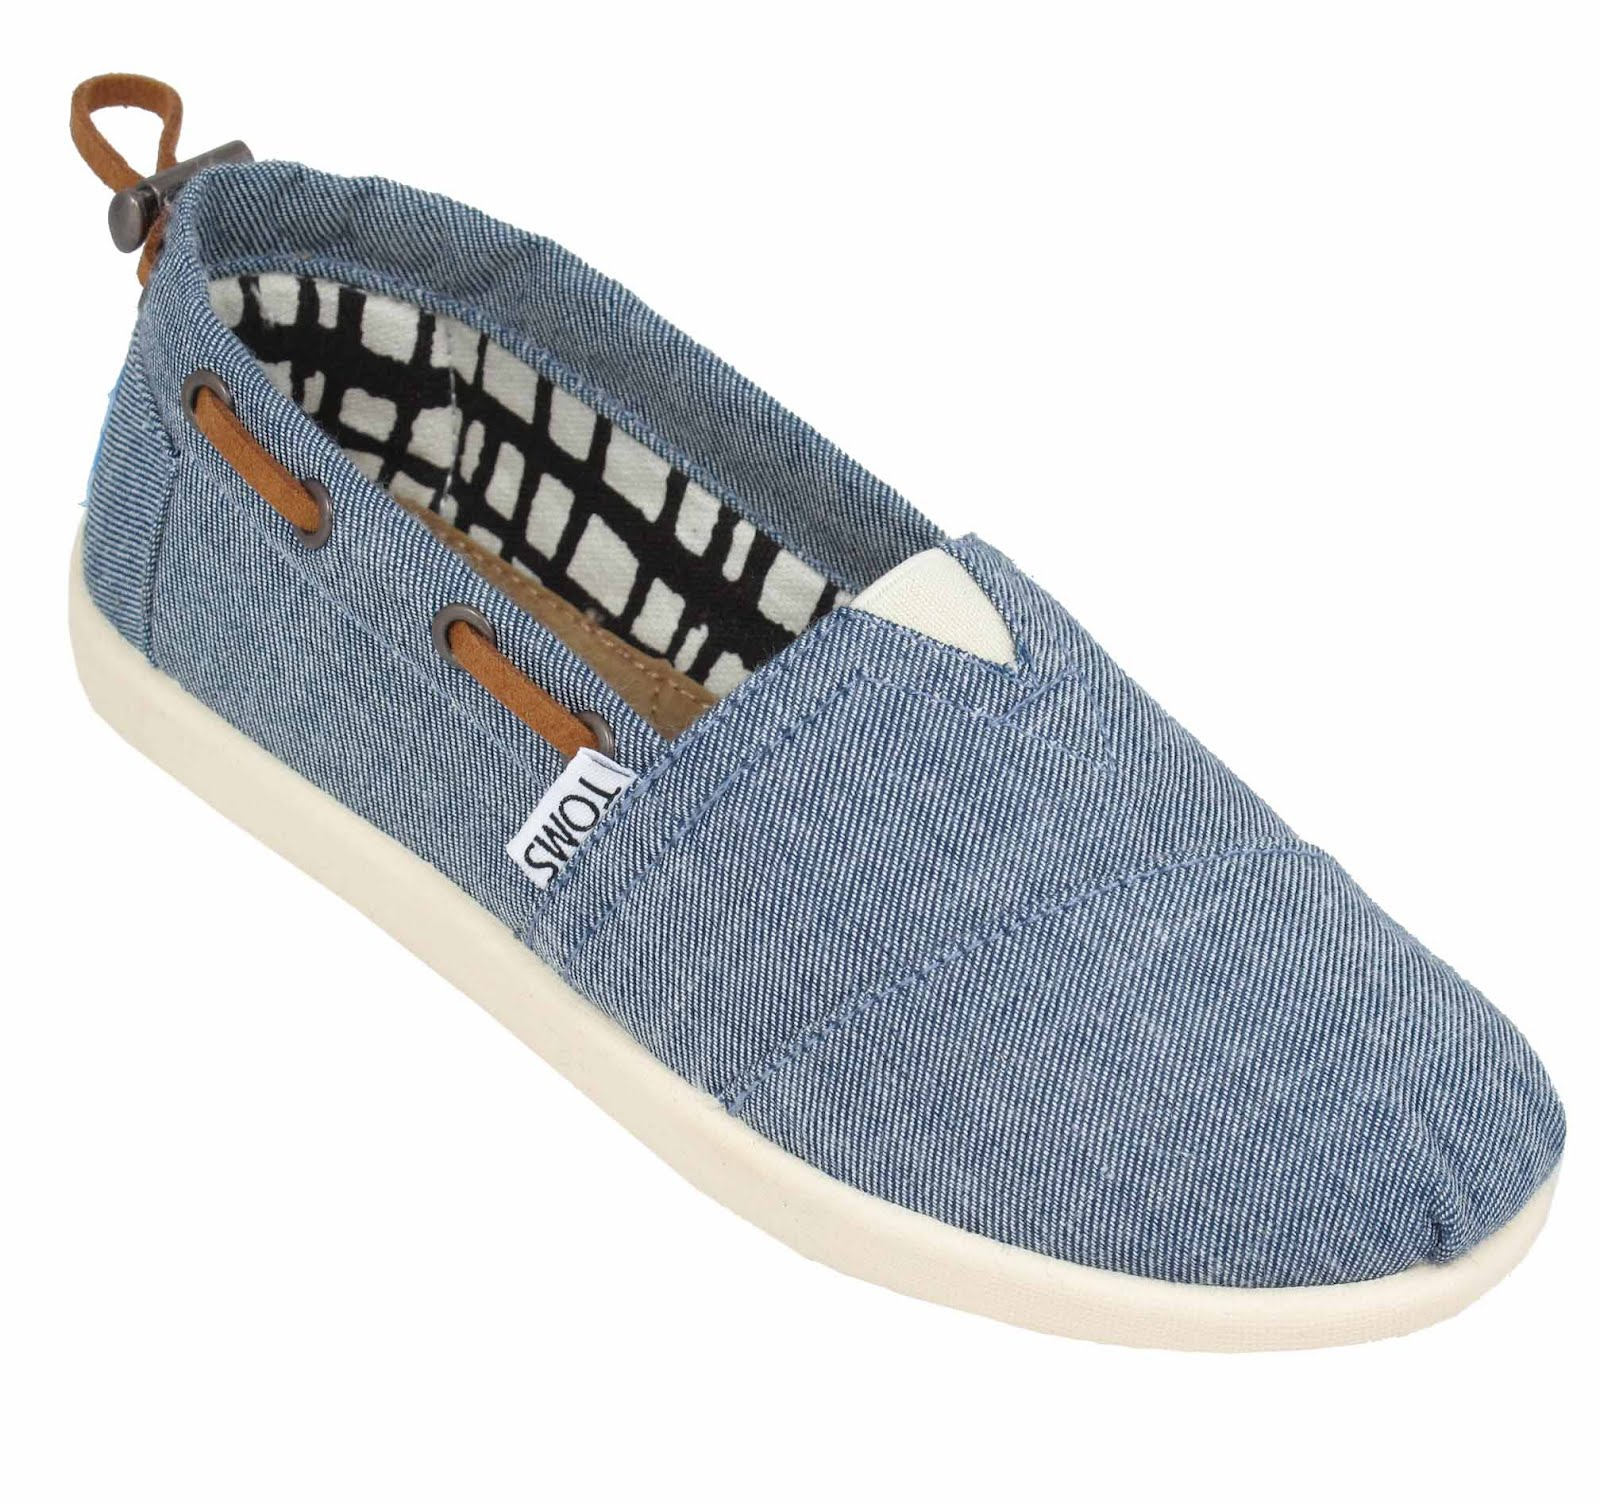 Large selection of todder & infant shoes and boots including Nike, Adidas, The North Face and more. Great deals on small, cute toddler shoes. Buy toddler & infant shoes online at giveback.cf